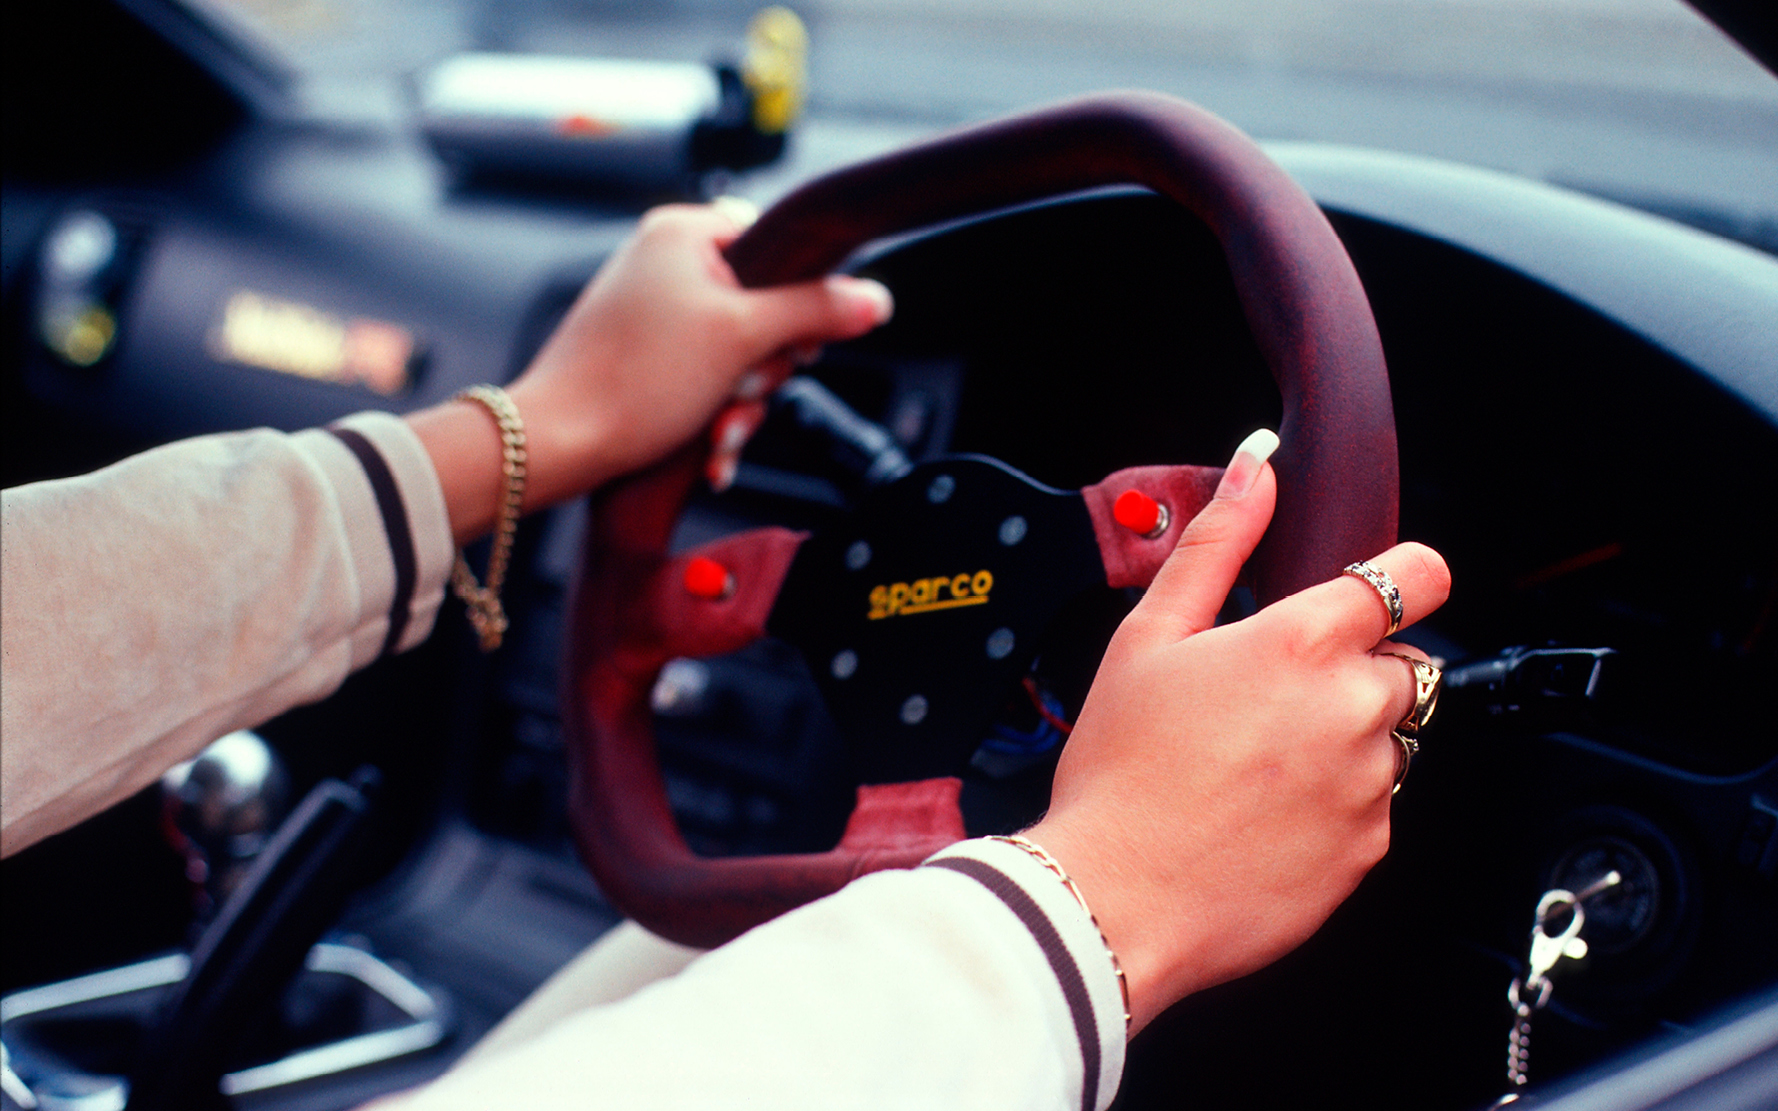 A girl with false nails, with her hands on the steering wheel of her car, Girlracers, Southend, UK 2004      ©   Naki   / PYMCA